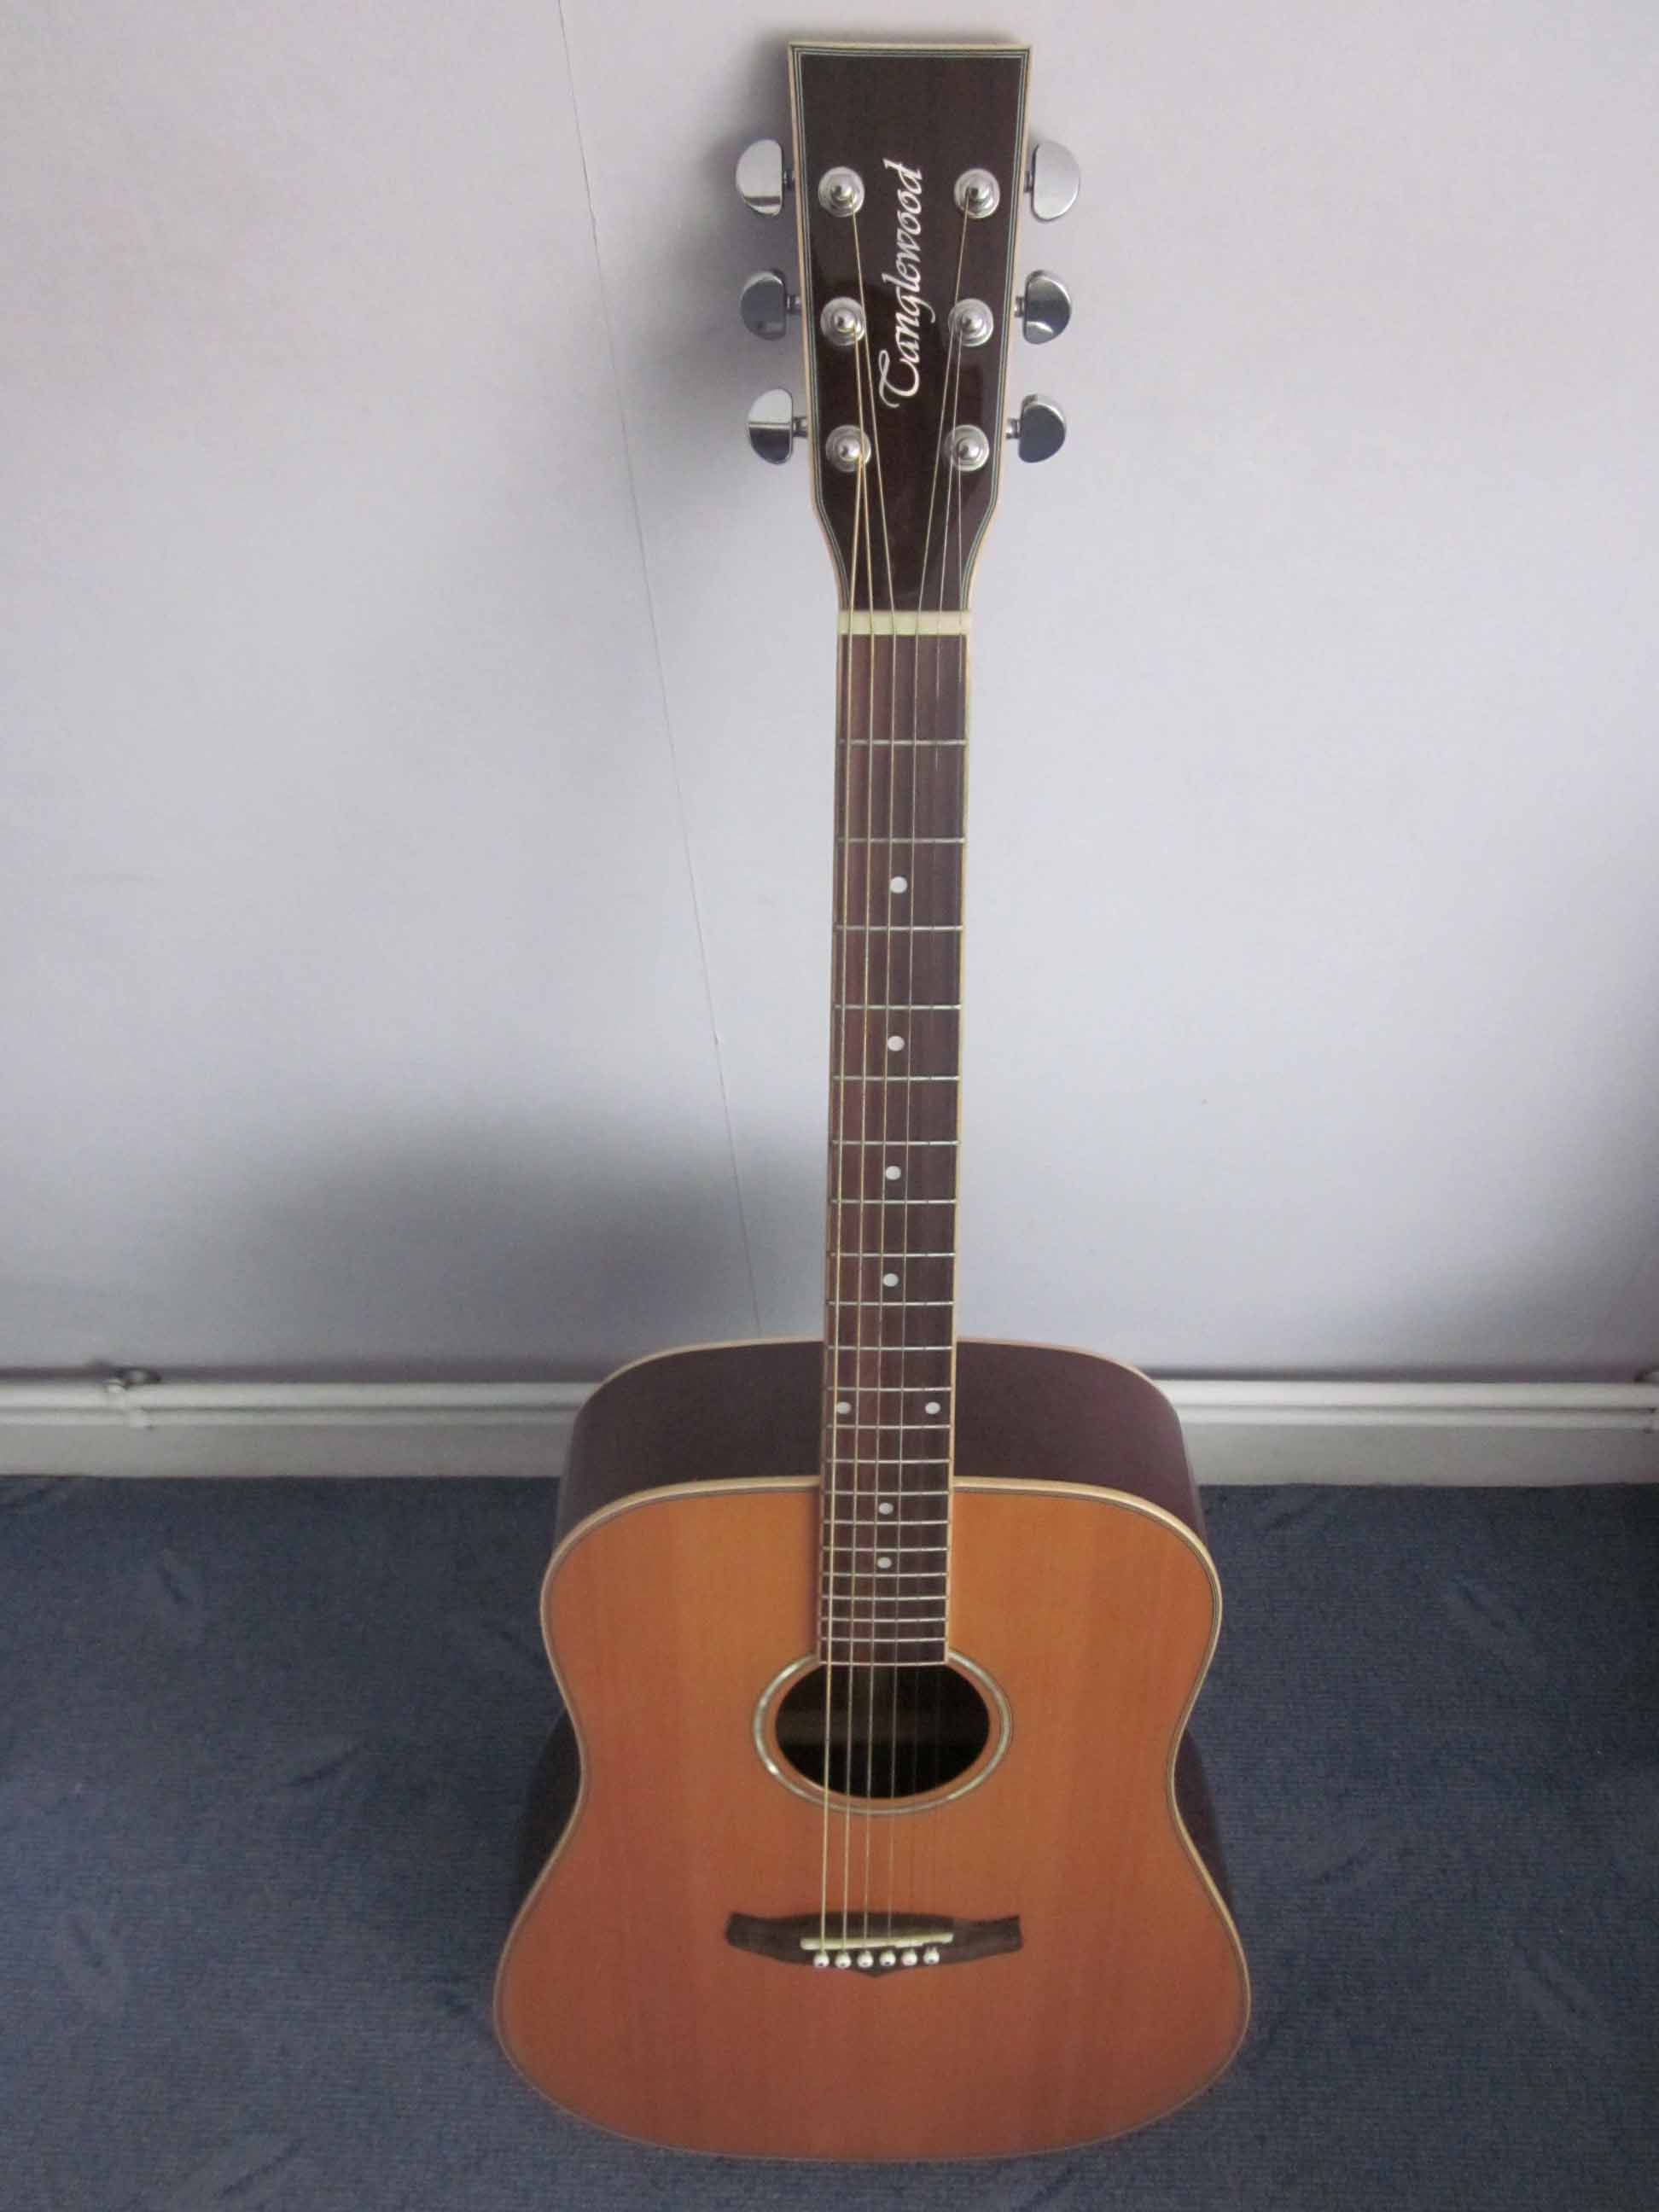 Photo tanglewood tw28 csg tanglewood tw28 csg 91918 for The tanglewood